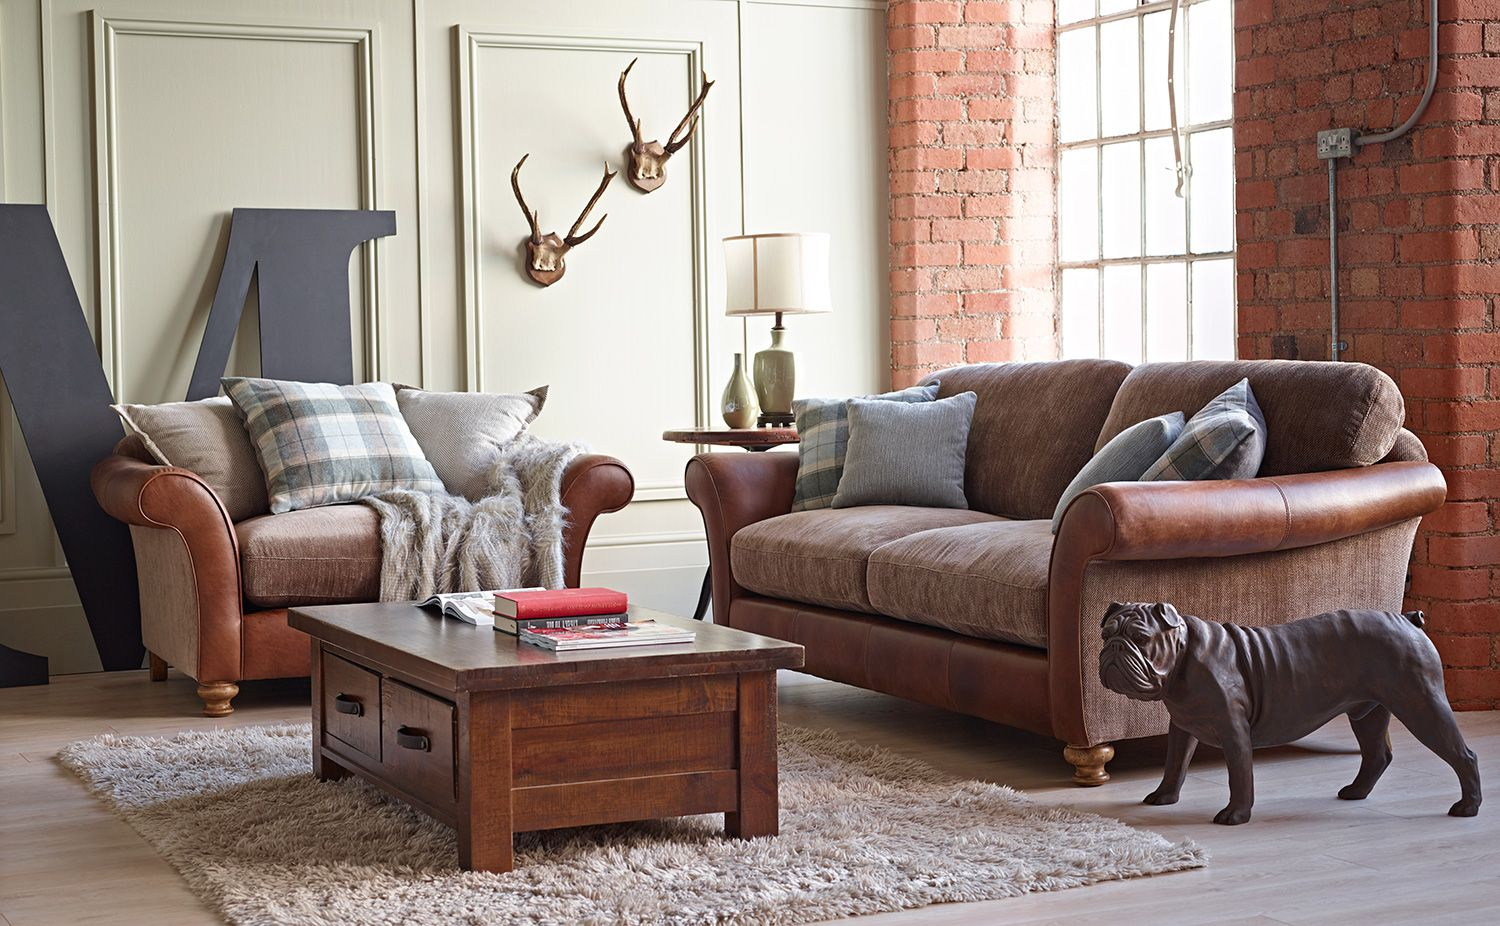 Excellent Lawrence 3 Seater Sofa Alexander And James Pillows In Caraccident5 Cool Chair Designs And Ideas Caraccident5Info